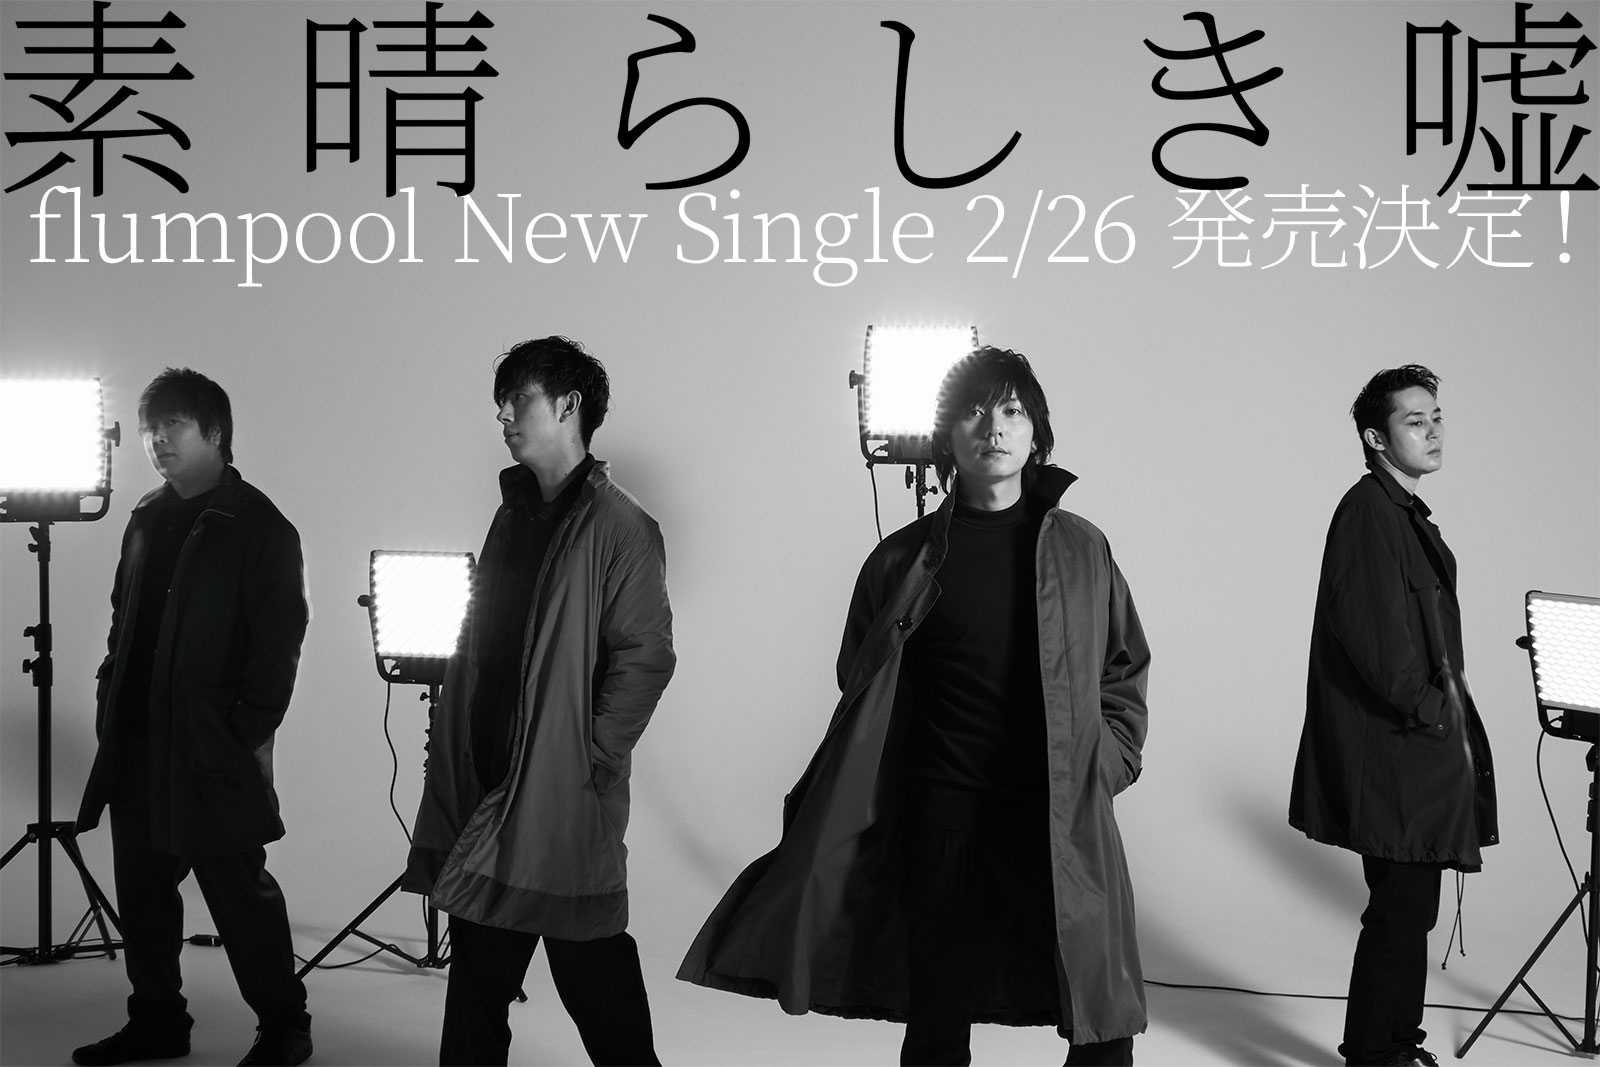 flumpool New Single「素晴らしき嘘」2/26 Release